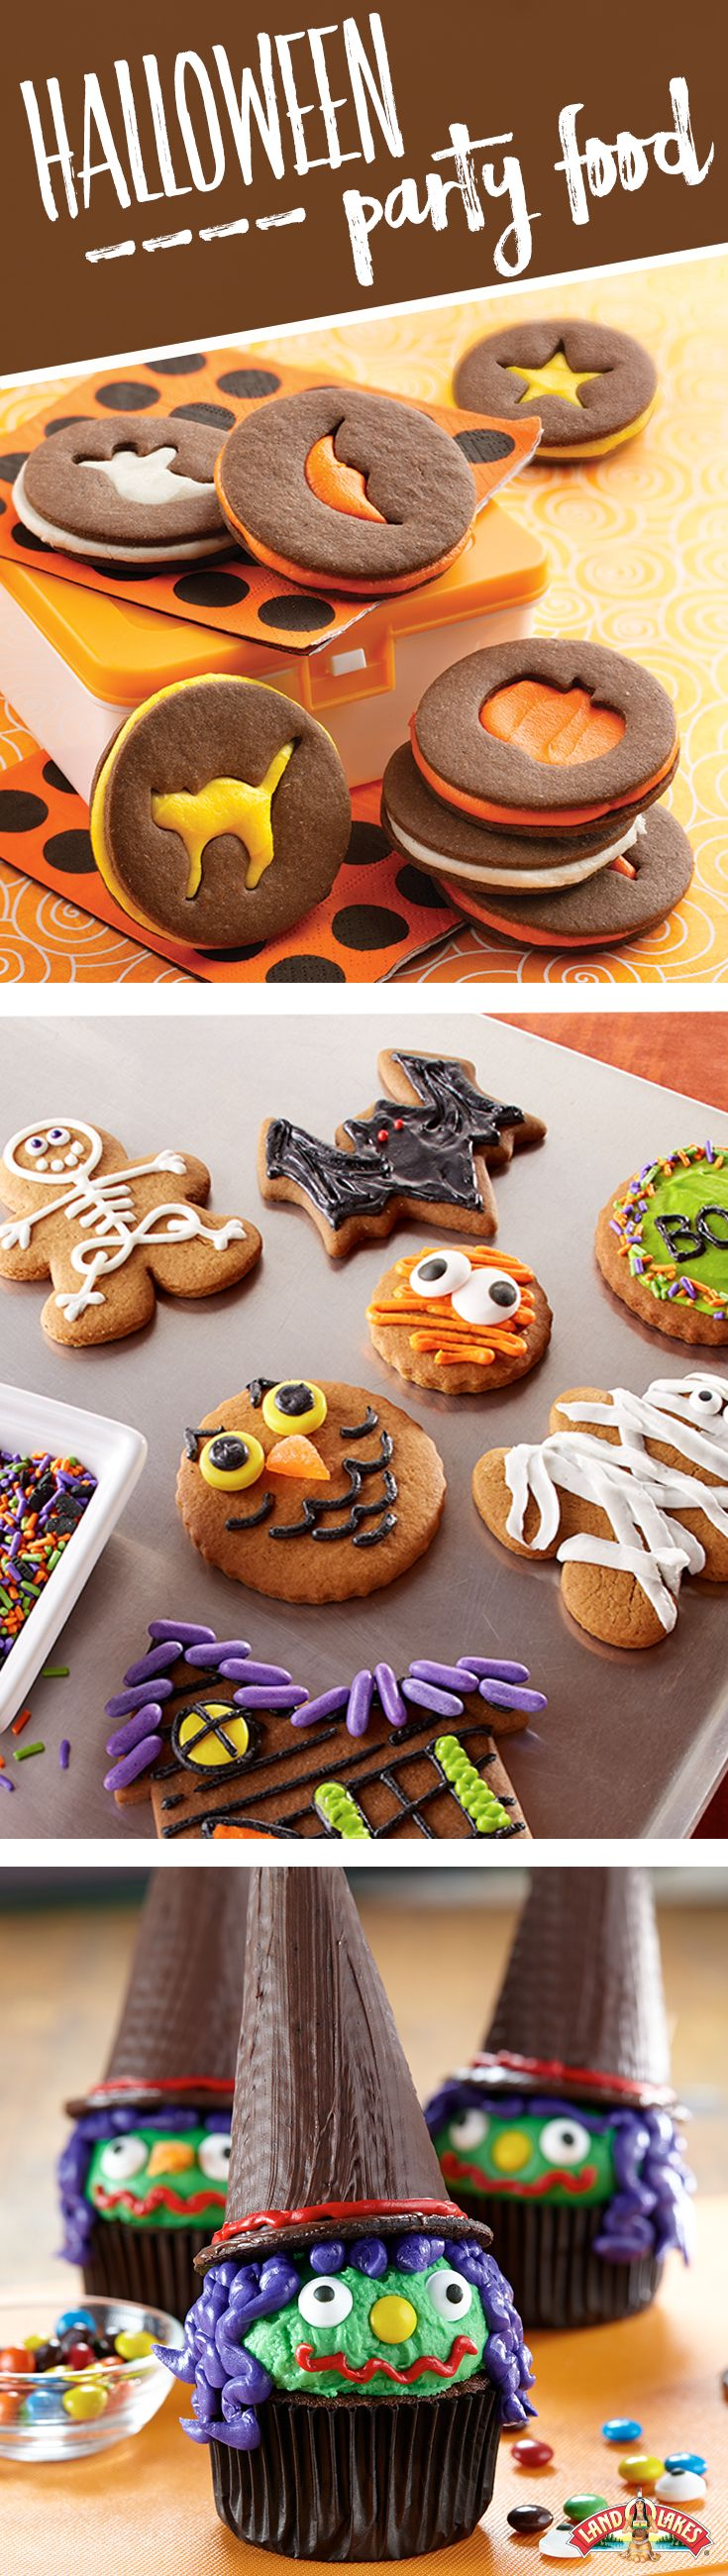 Fun and colorful treat ideas for your next Halloween party!